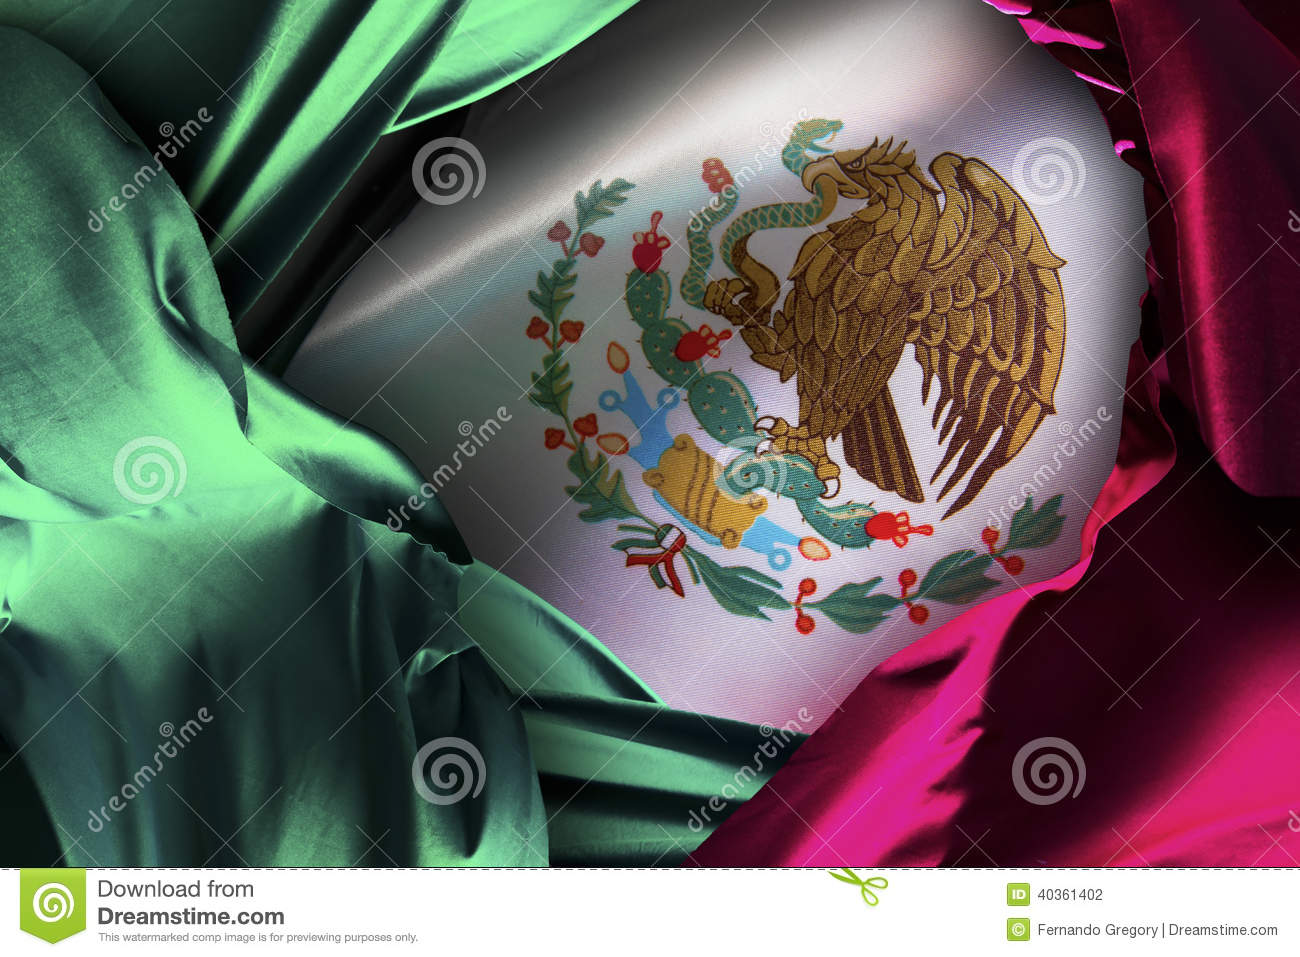 Mexican flag, independence day, cinco de mayo celebration